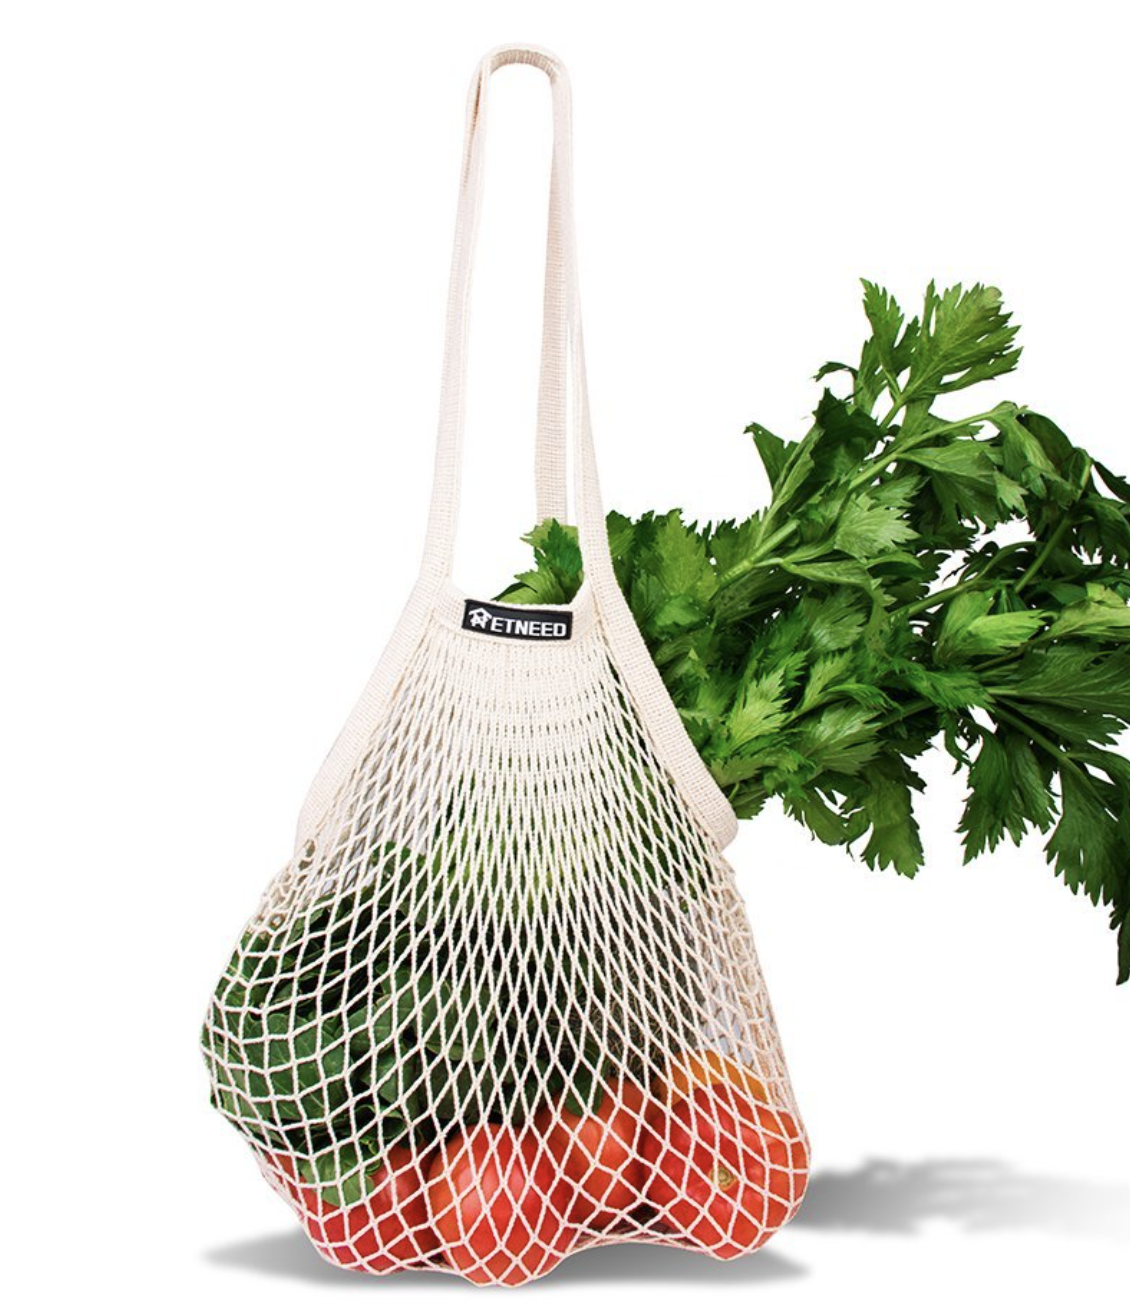 NetNeed -  NetNeed Cotton Reusable Grocery Net Shopping String Bagsby NetNeedLink: http://a.co/i4OFclZ